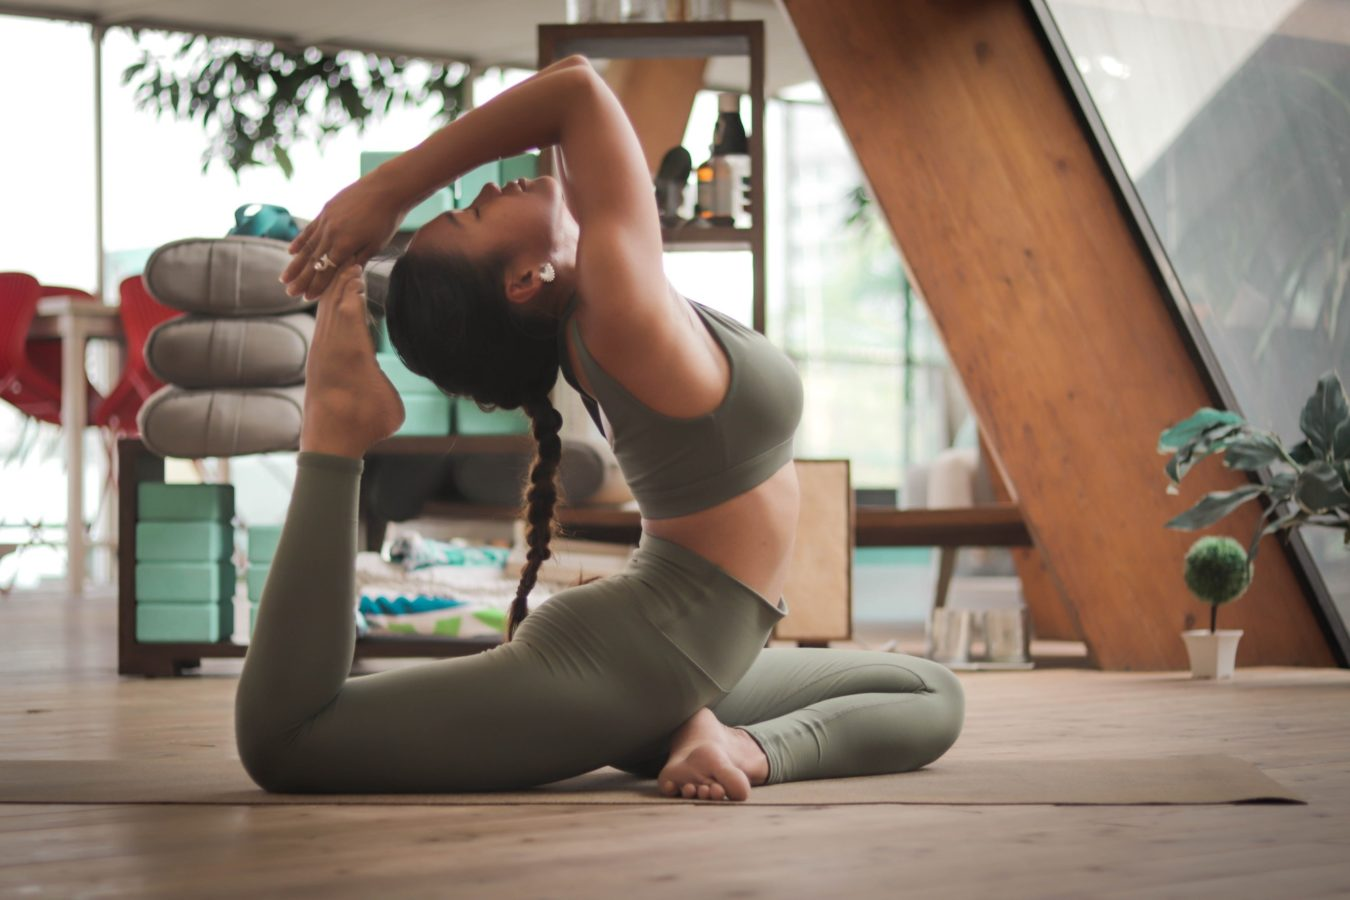 Budget-friendly gym essentials you need for a productive workout at home